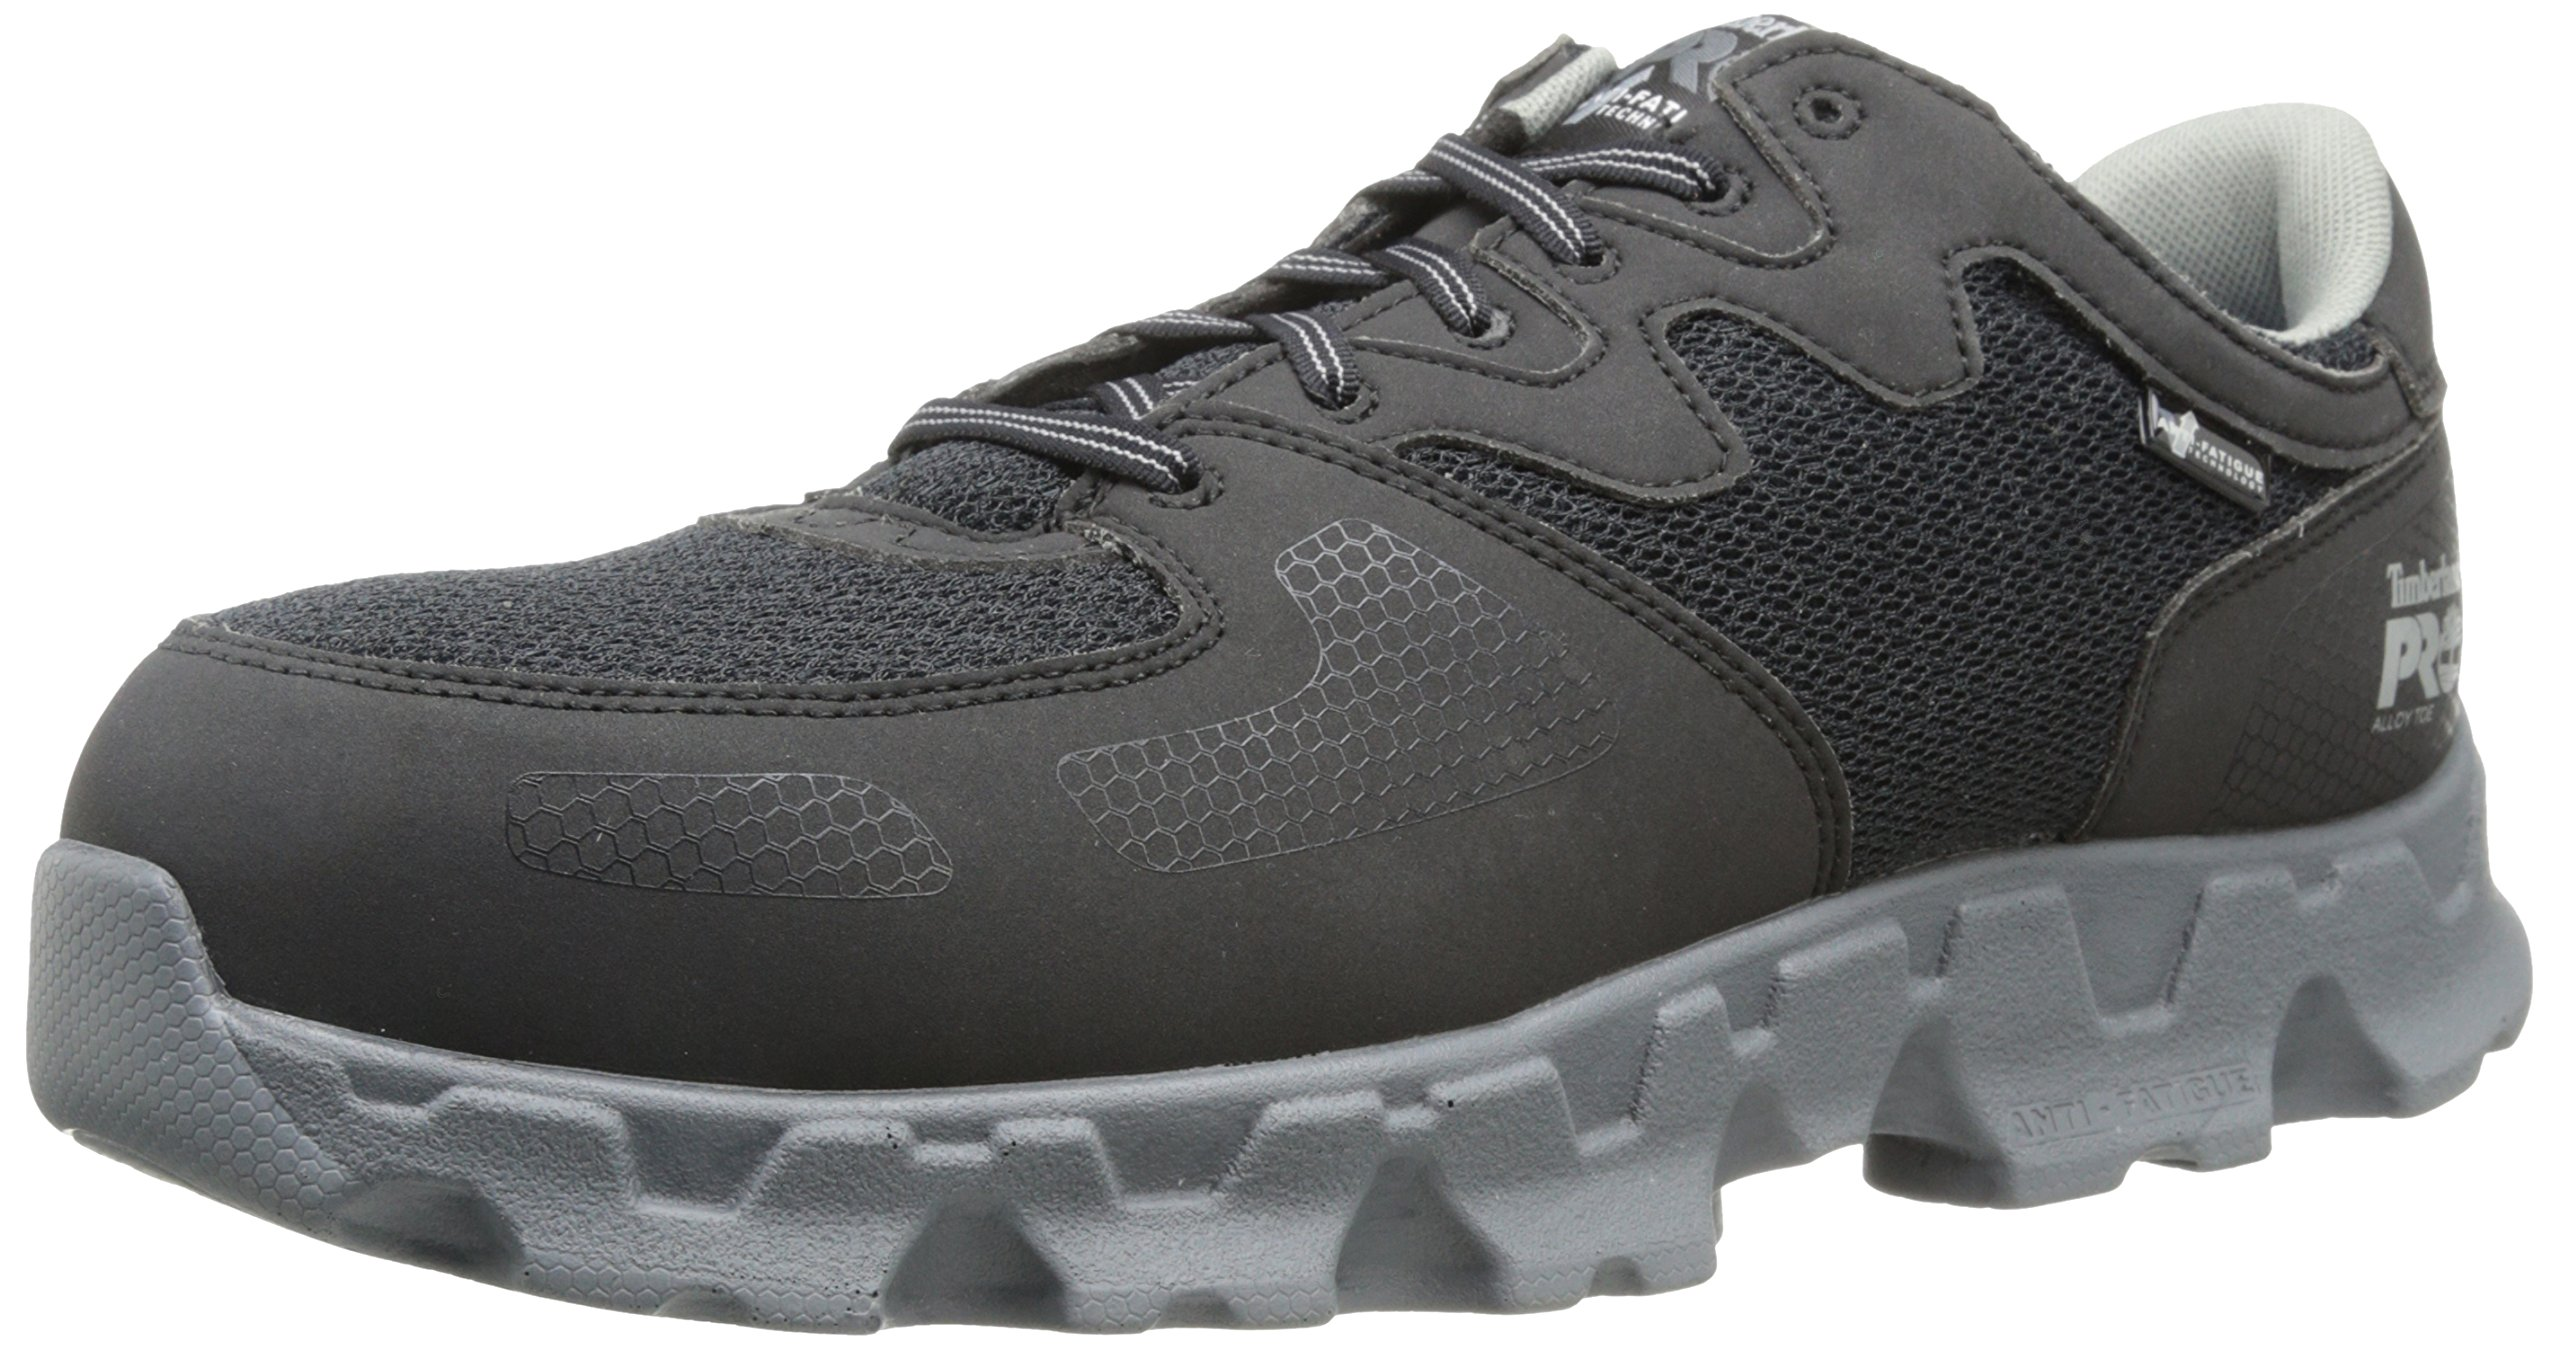 Timberland PRO Men's Powertrain Alloy Toe ESD Industrial Shoe,Black/Grey Microfiber And Textile,12 W US